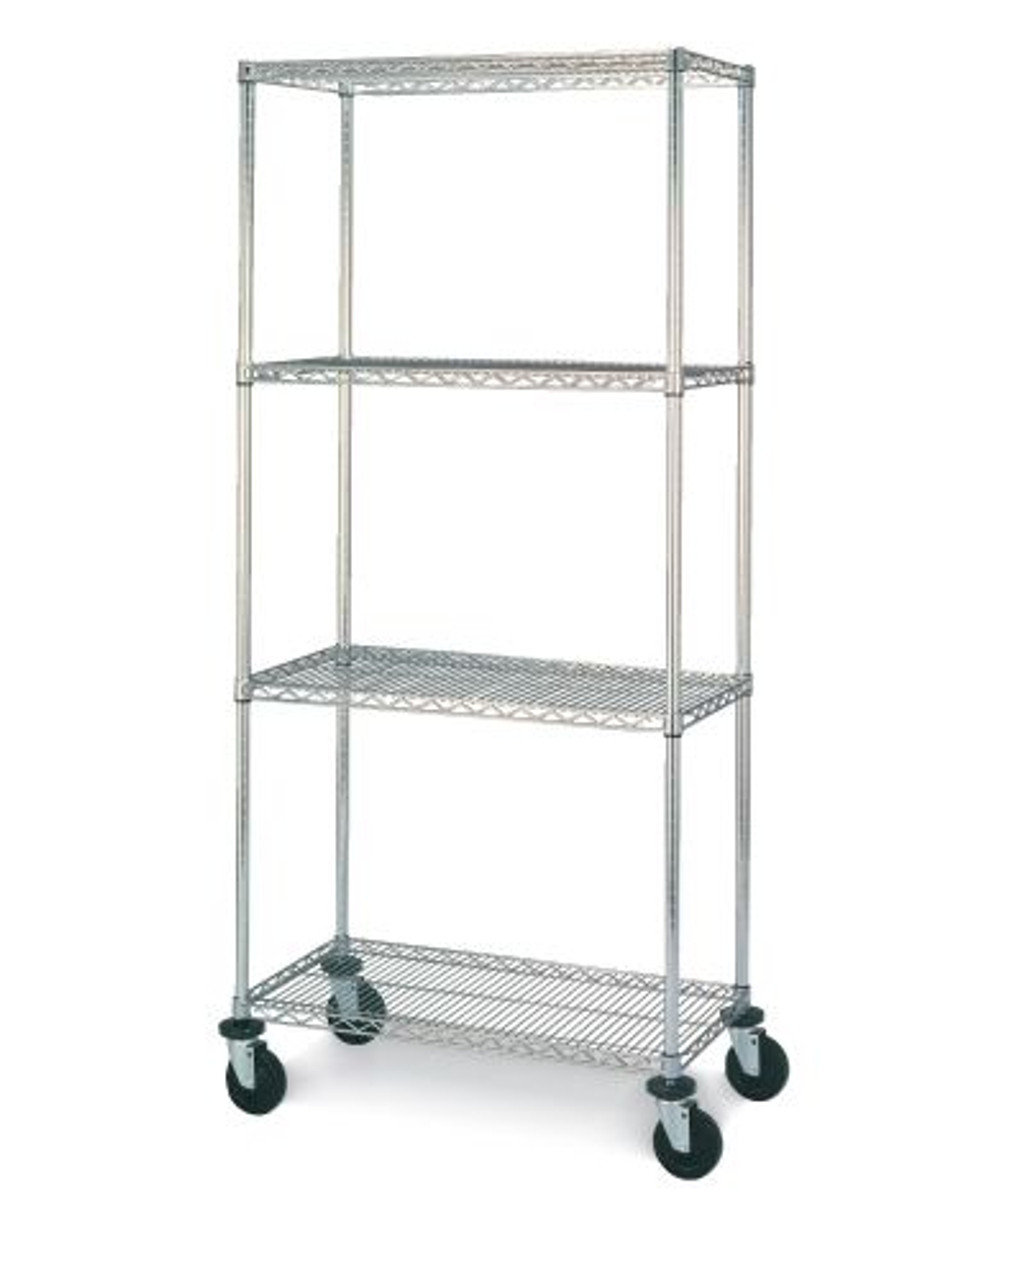 "Olympic 18"" Deep 4 Shelf Mobile Carts - Chrome - 18"" x 54"" x 68"" MJ1854-63UC"